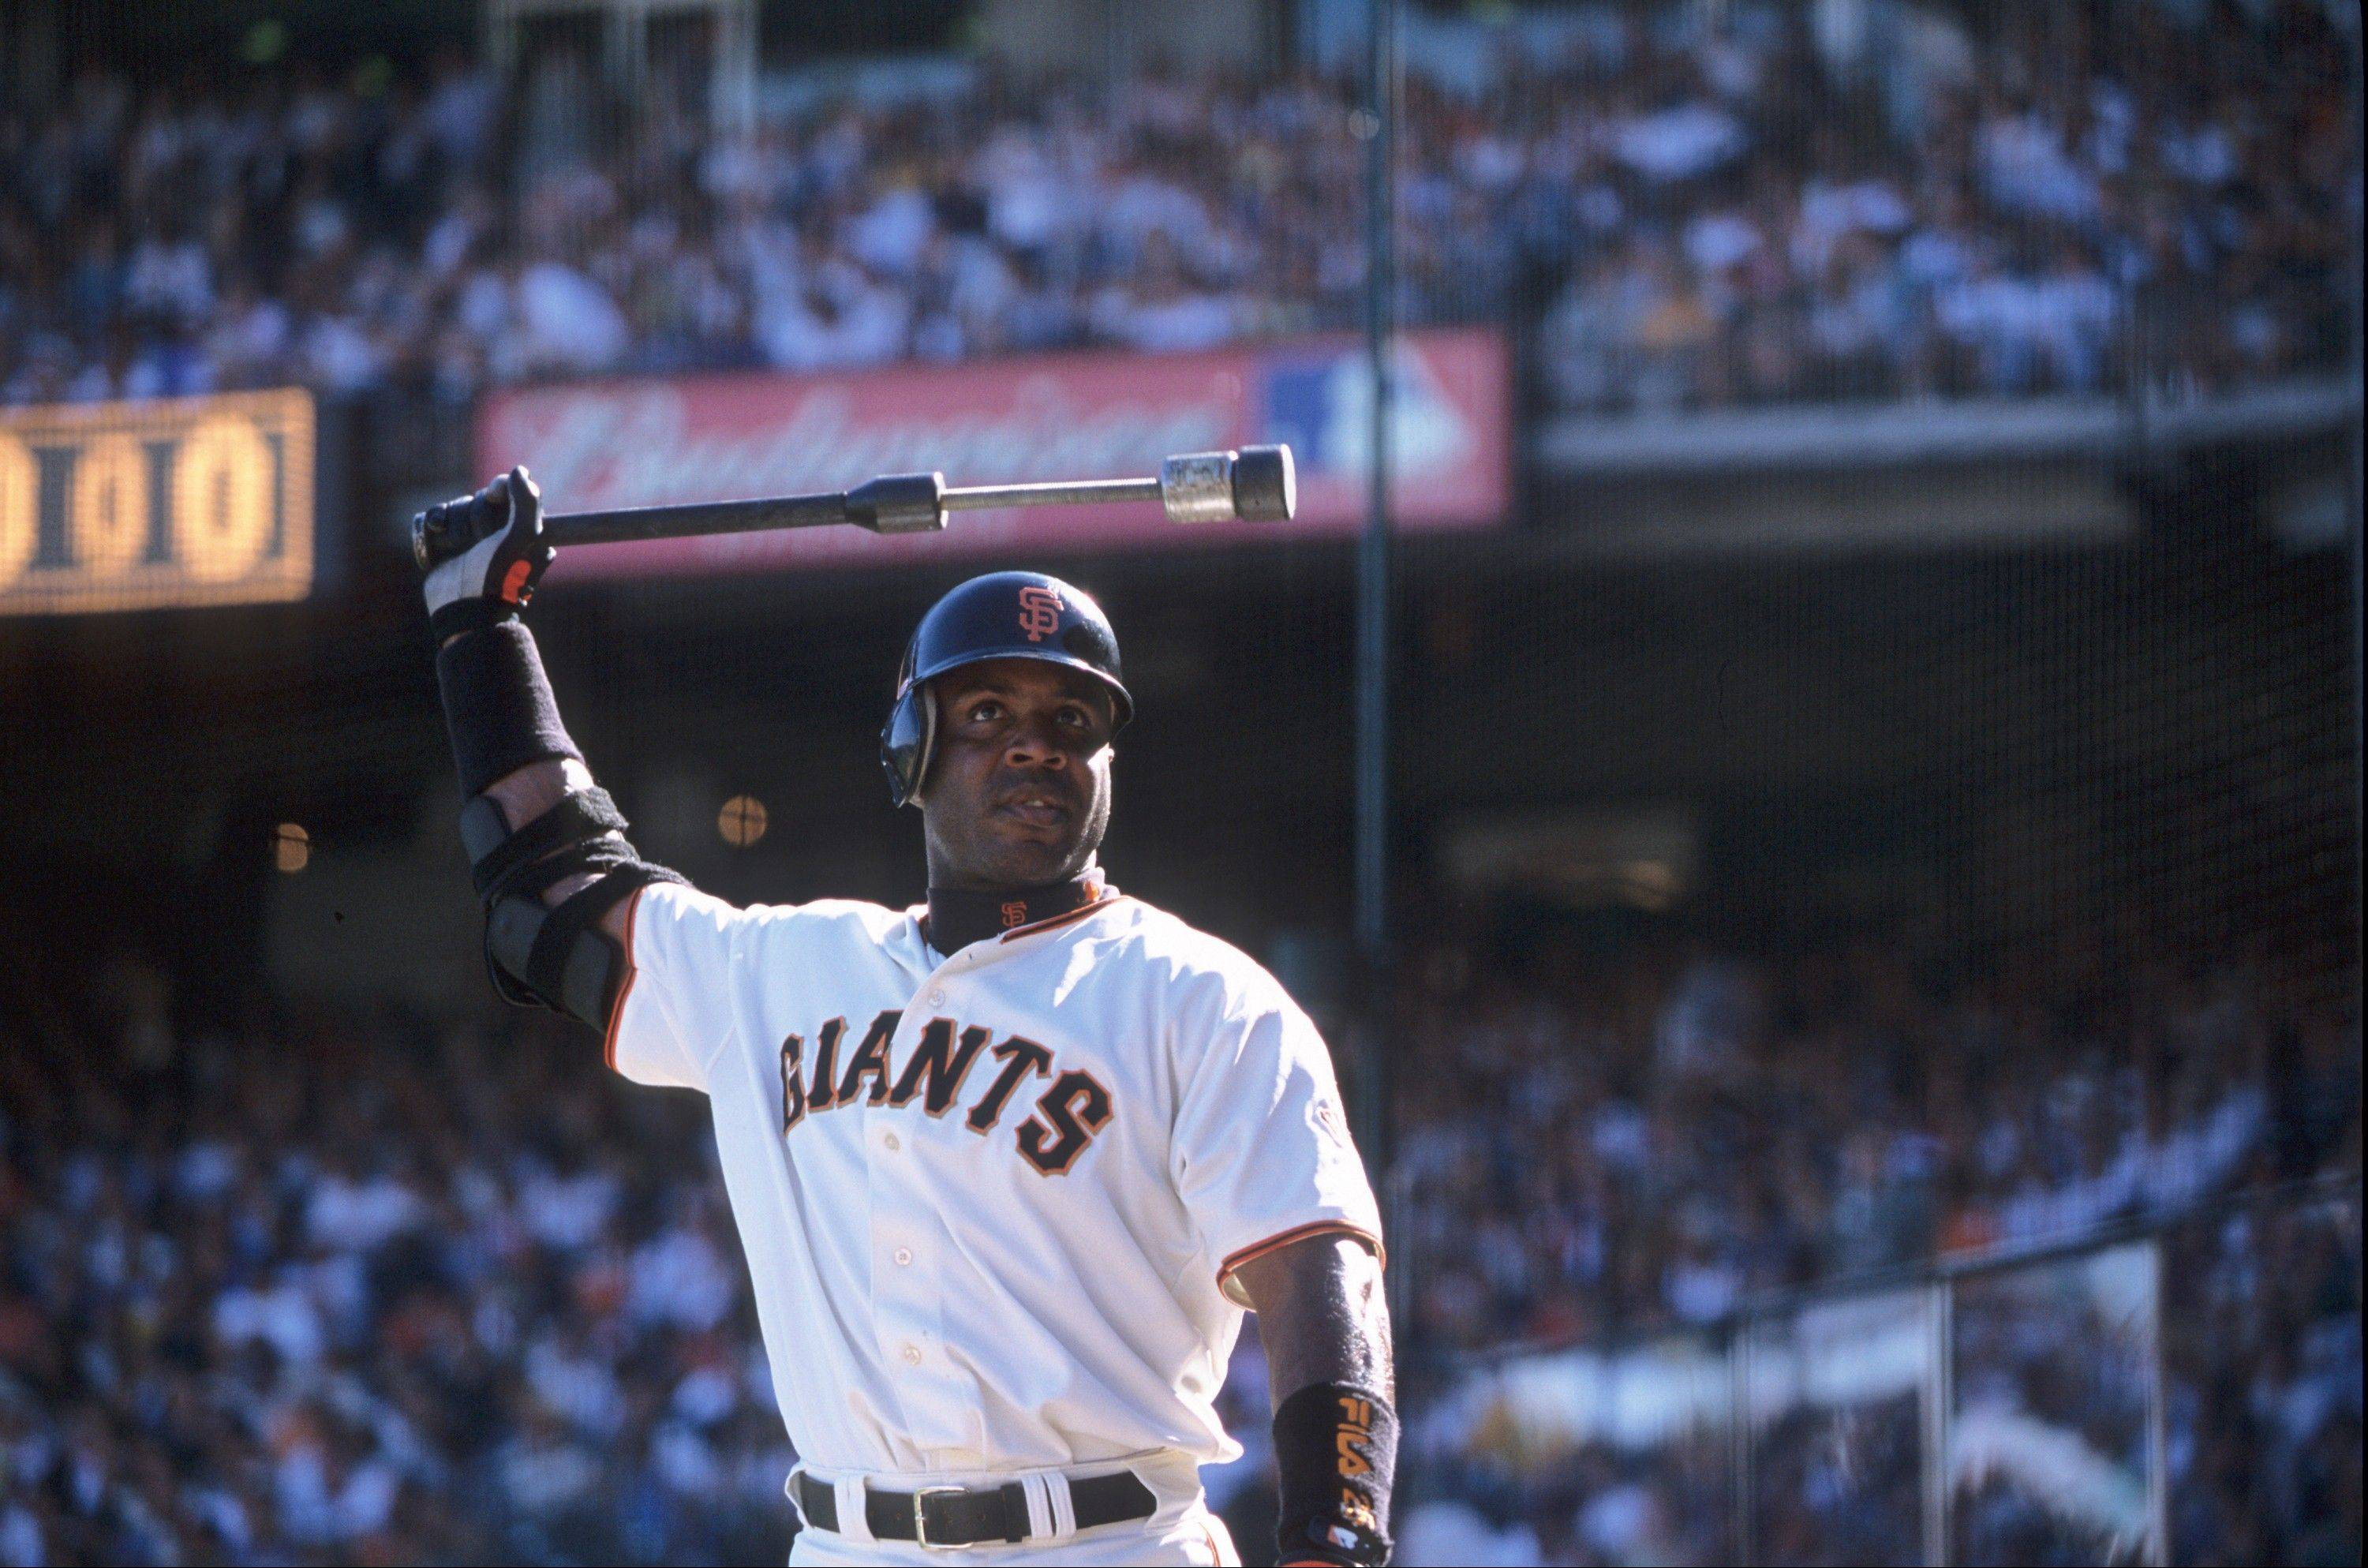 San Francisco Giants slugger Barry Bonds is set to show up on the Hall of Fame ballot for the first time, and fans will soon find out whether drug allegations block the former stars from reaching baseball's shrine.